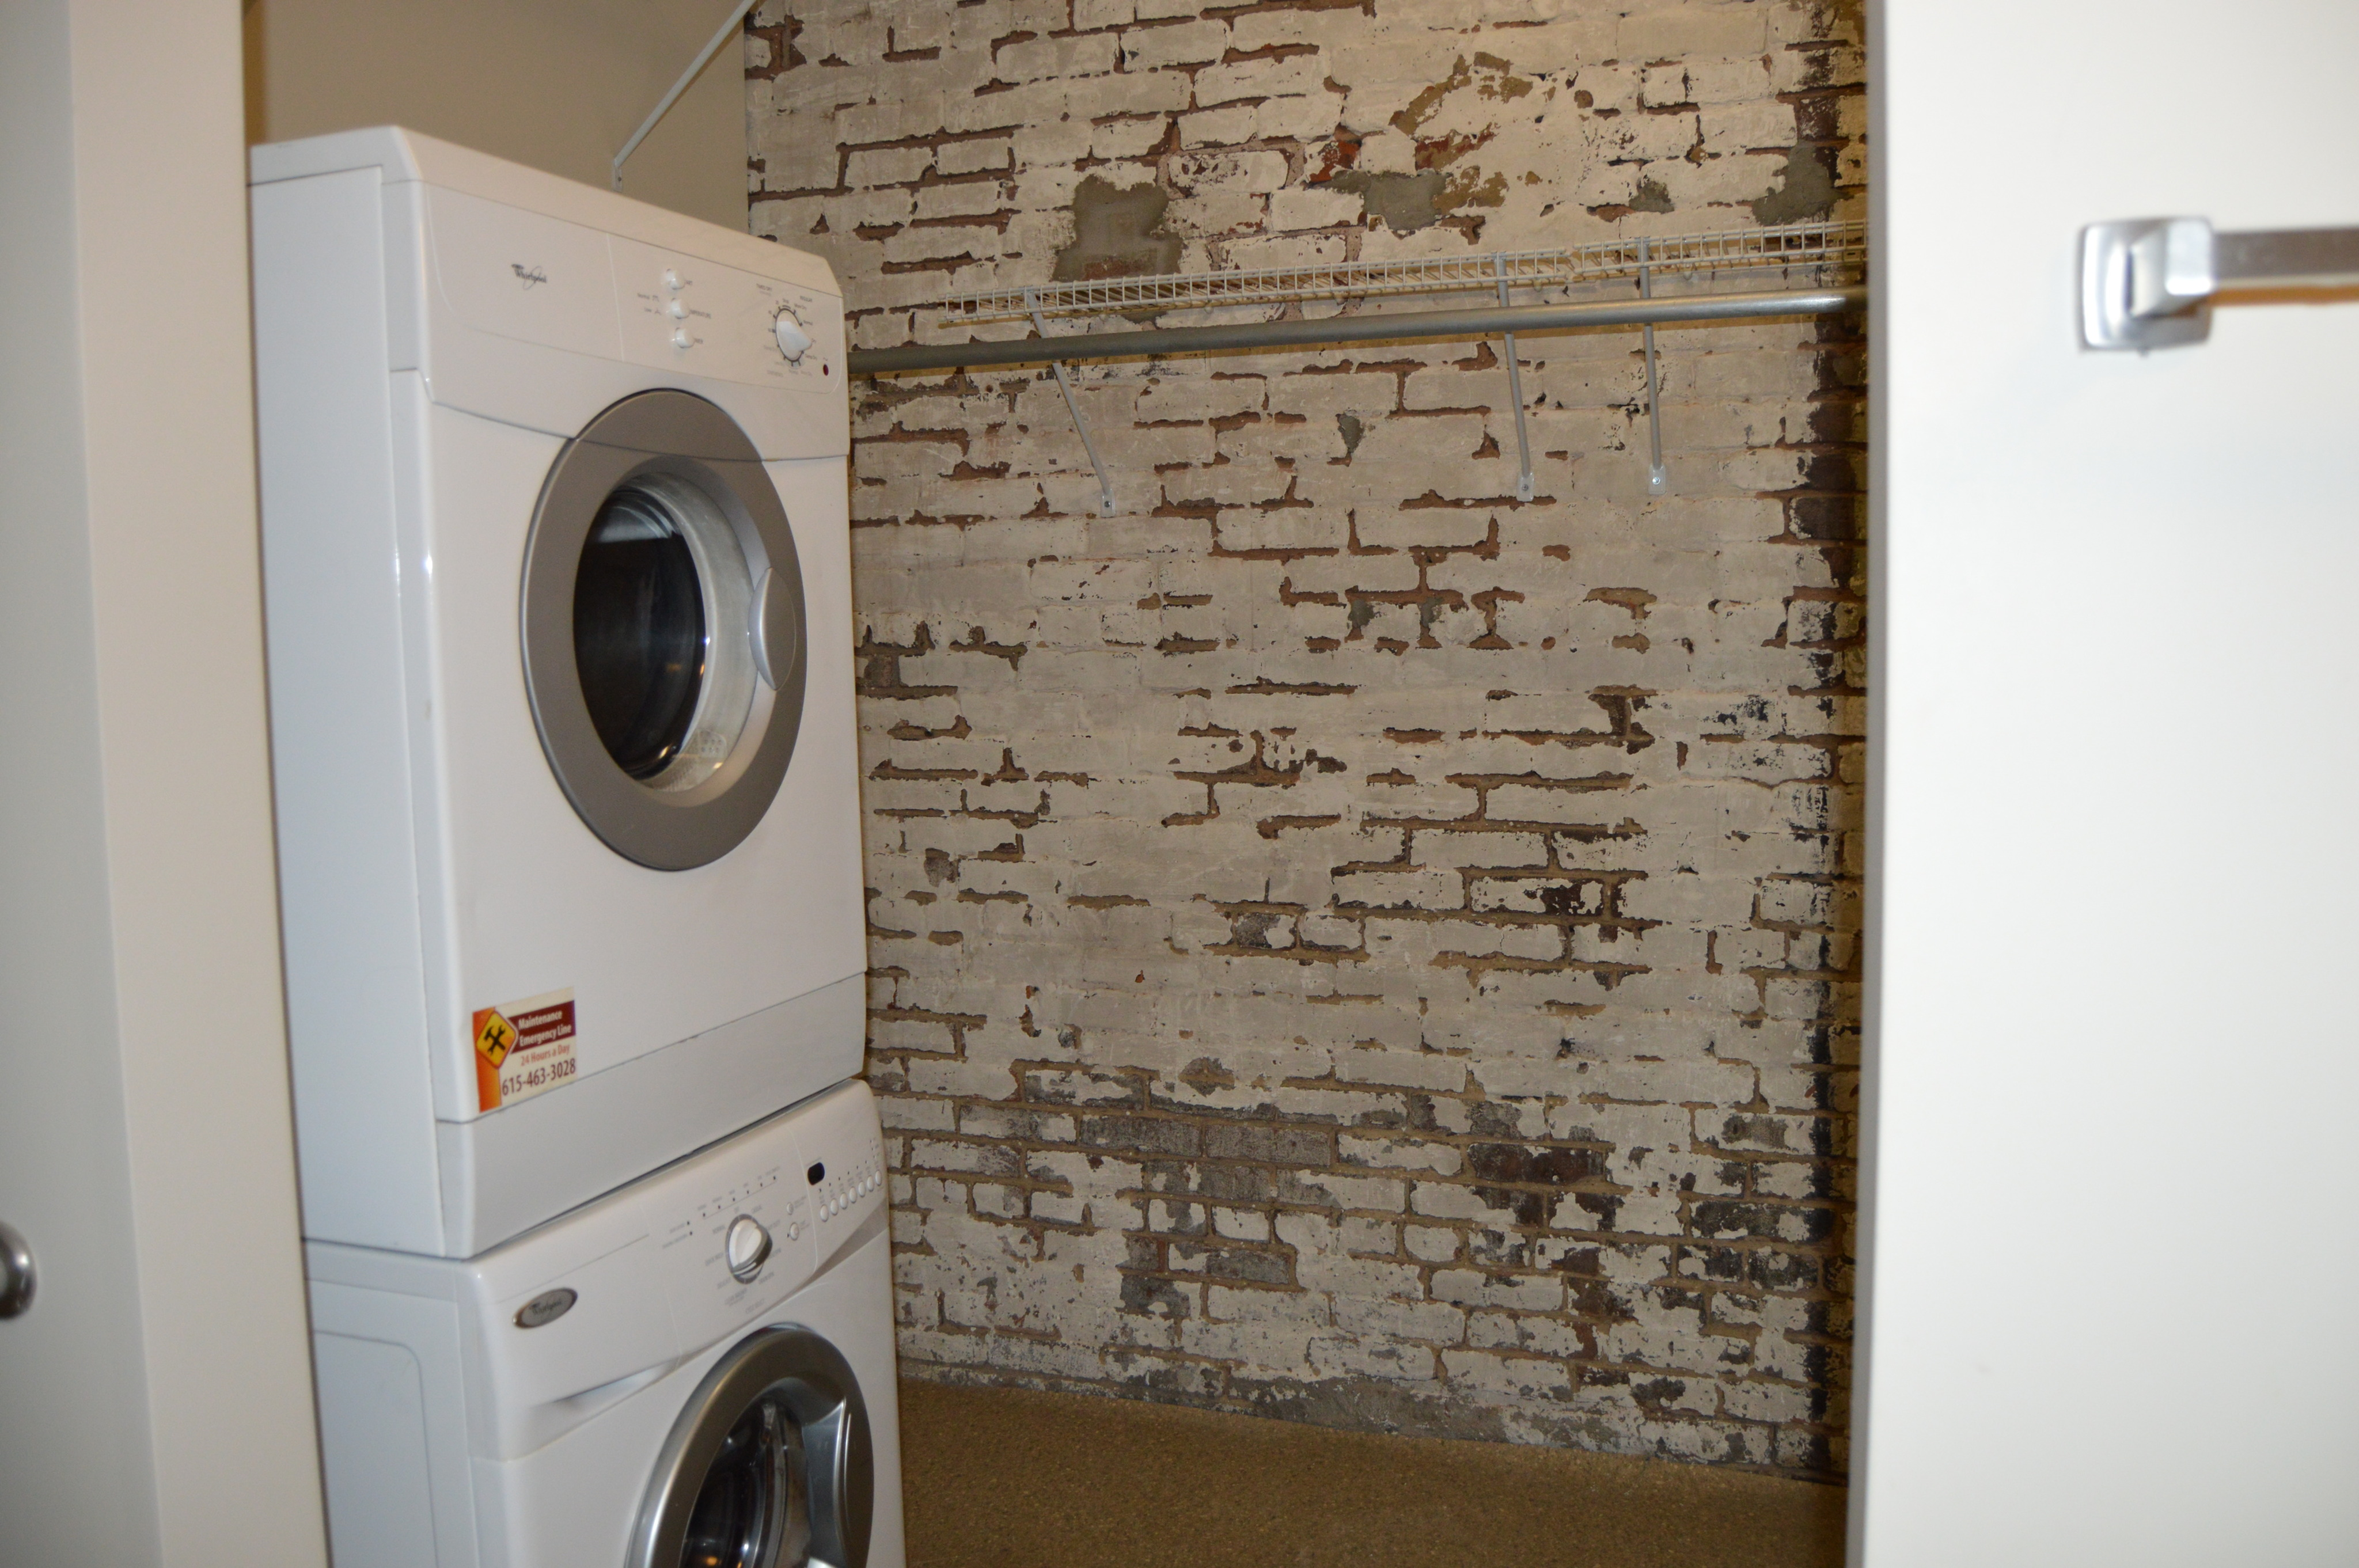 Image of In-Home Washer and Dryer for Lofts at 160